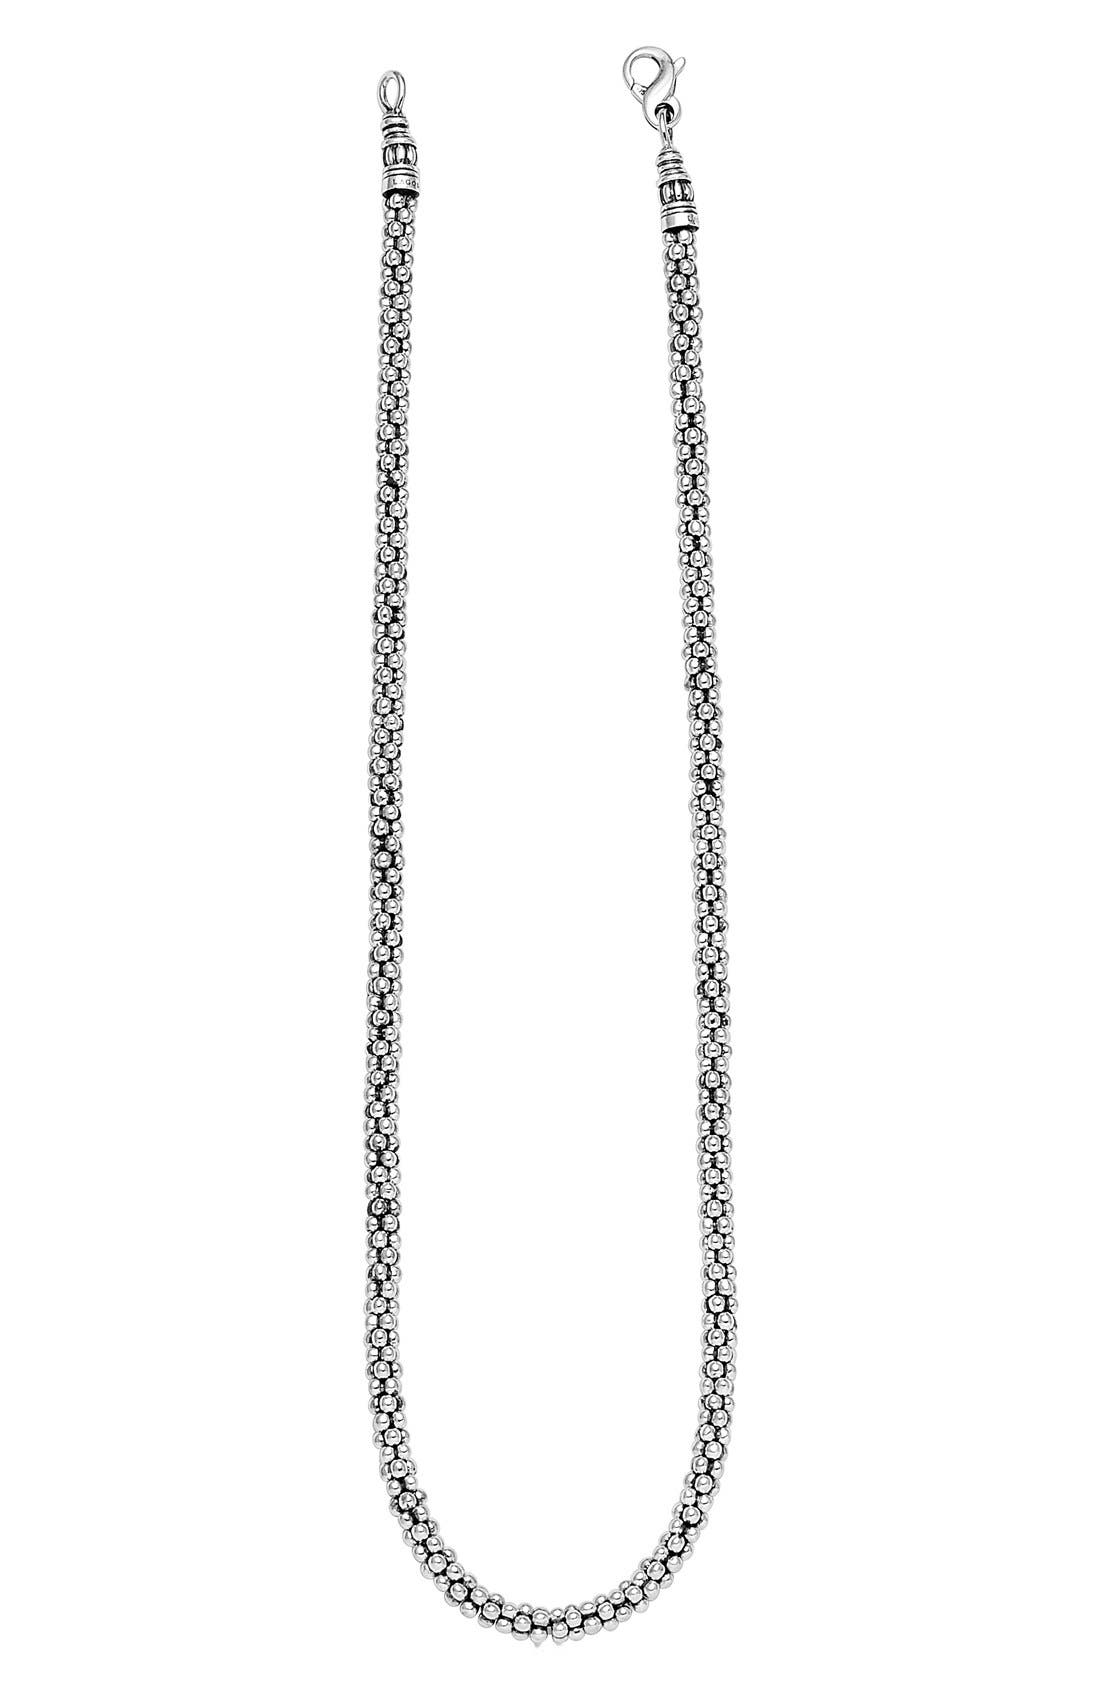 Alternate Image 1 Selected - LAGOS Sterling Silver 4mm Caviar Chain Necklace